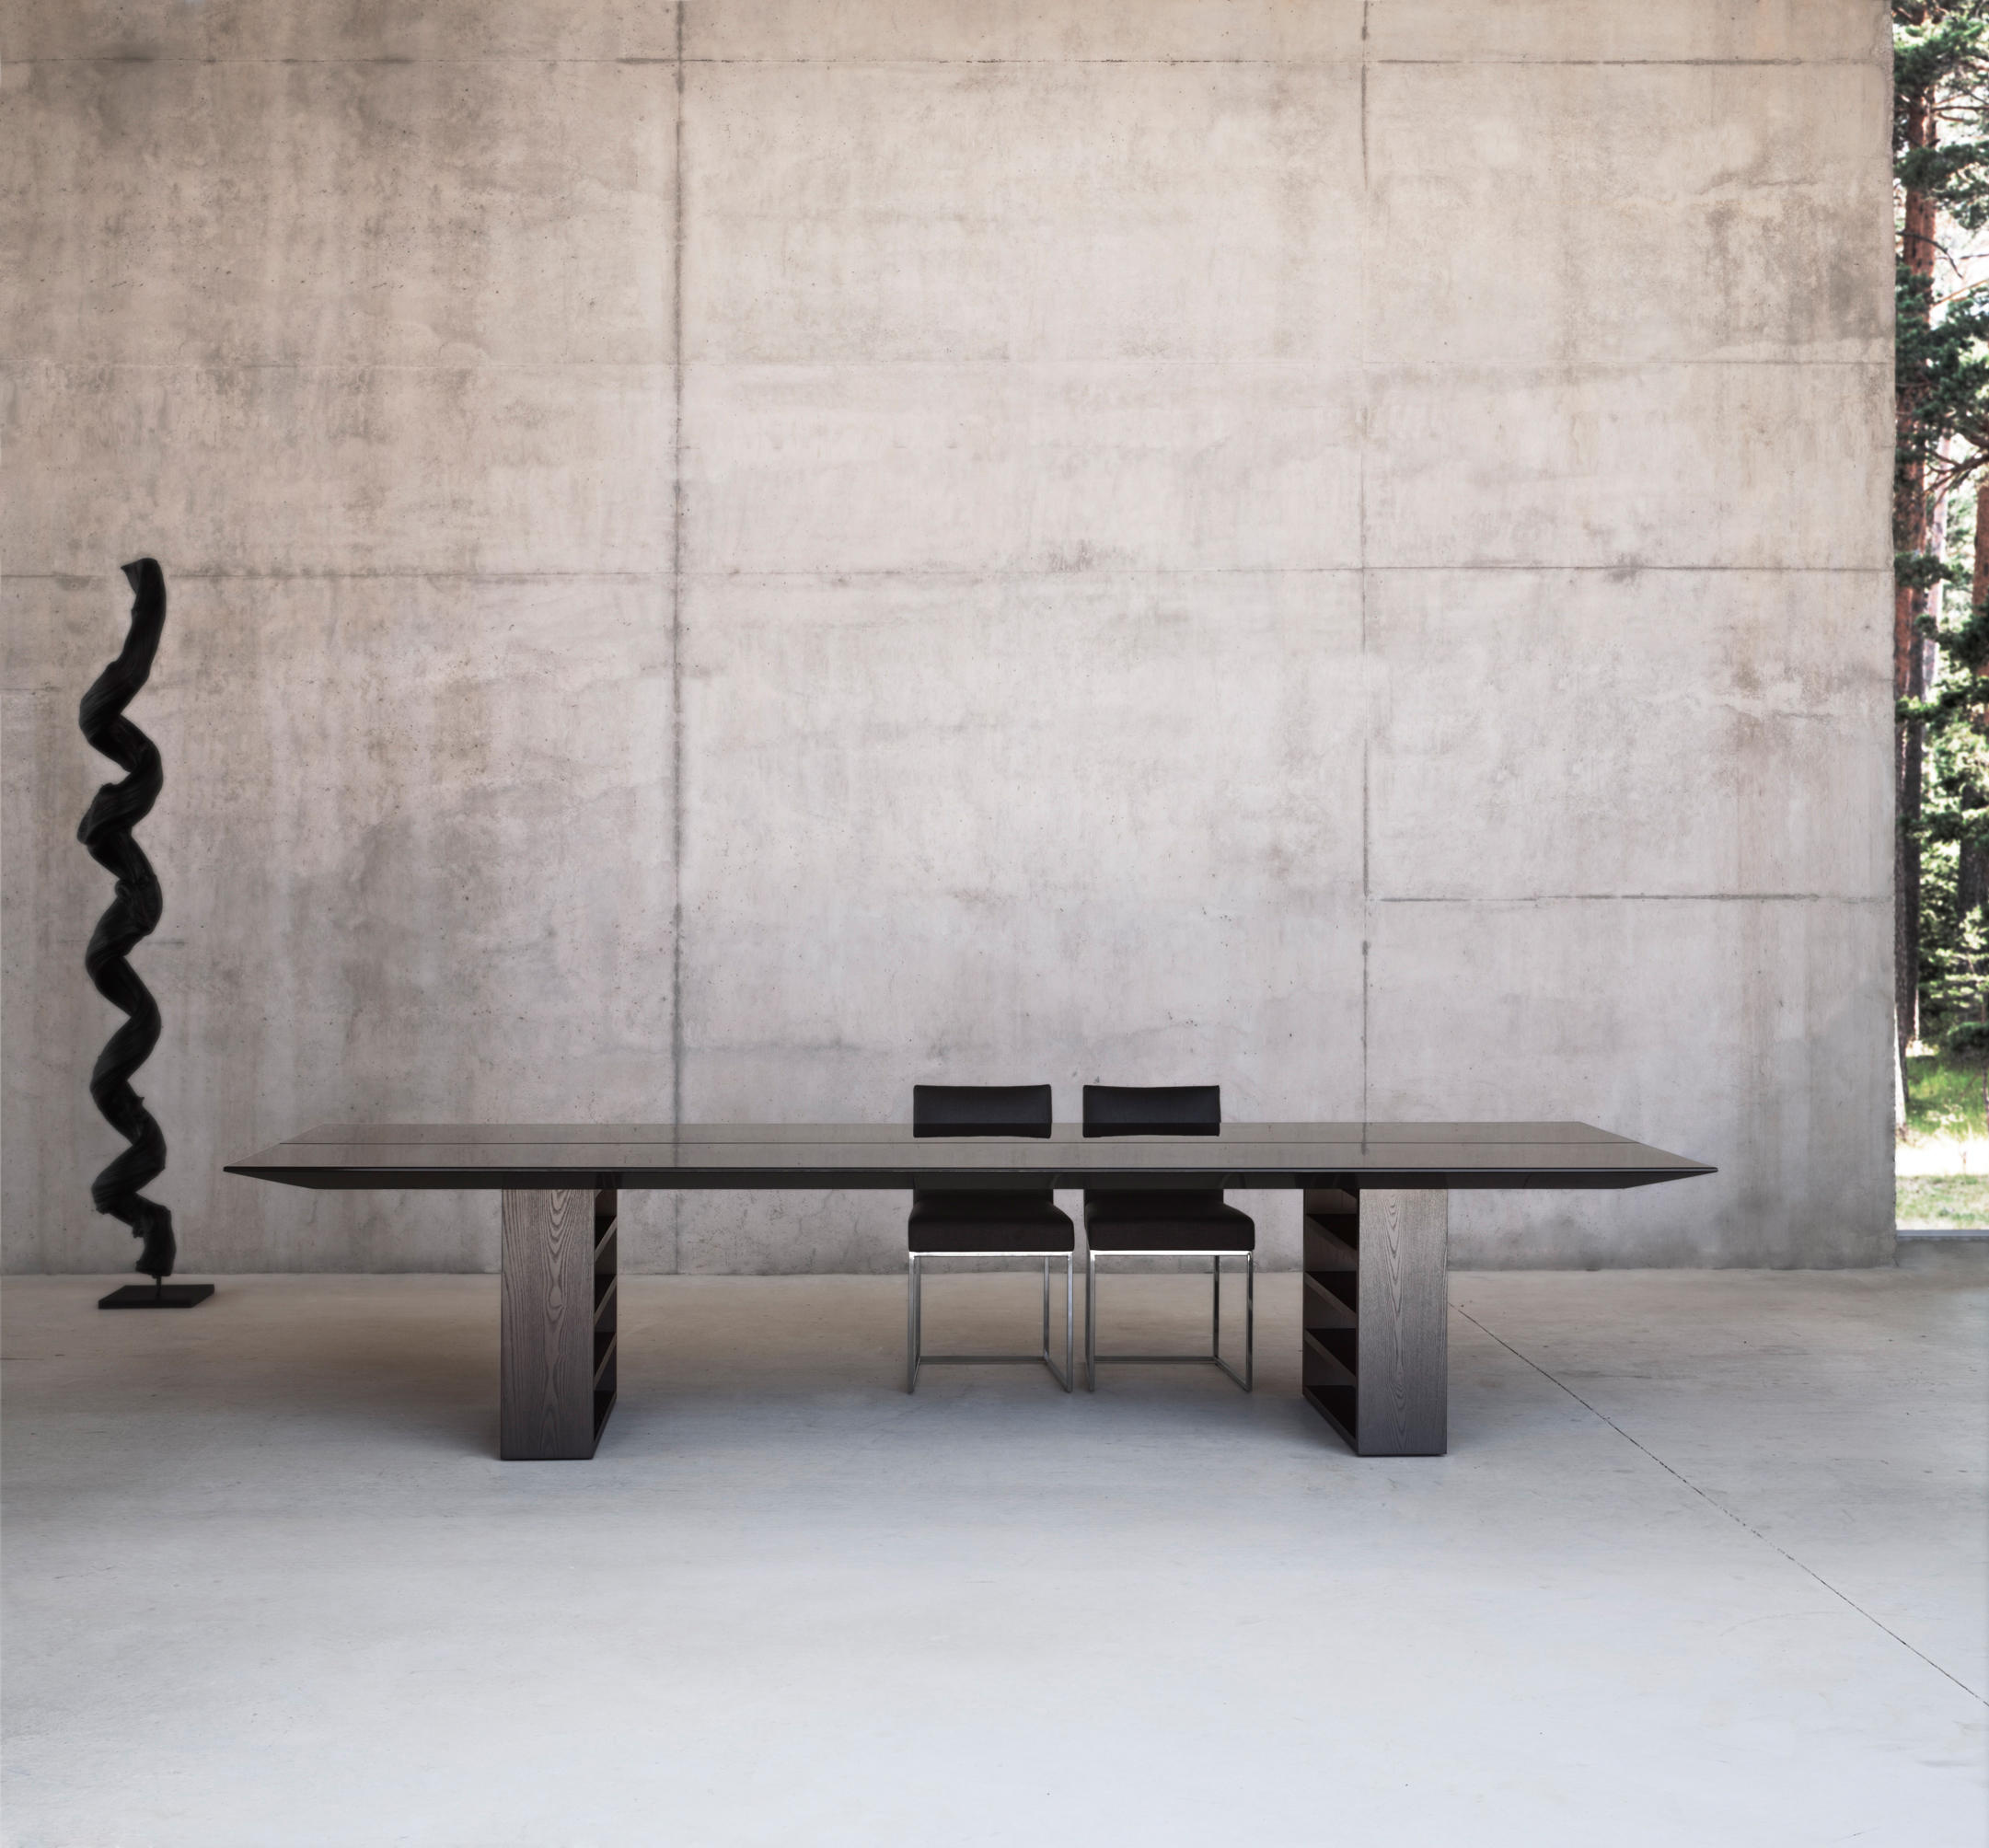 baltus furniture. pompeya dining table by baltus tables baltus furniture e